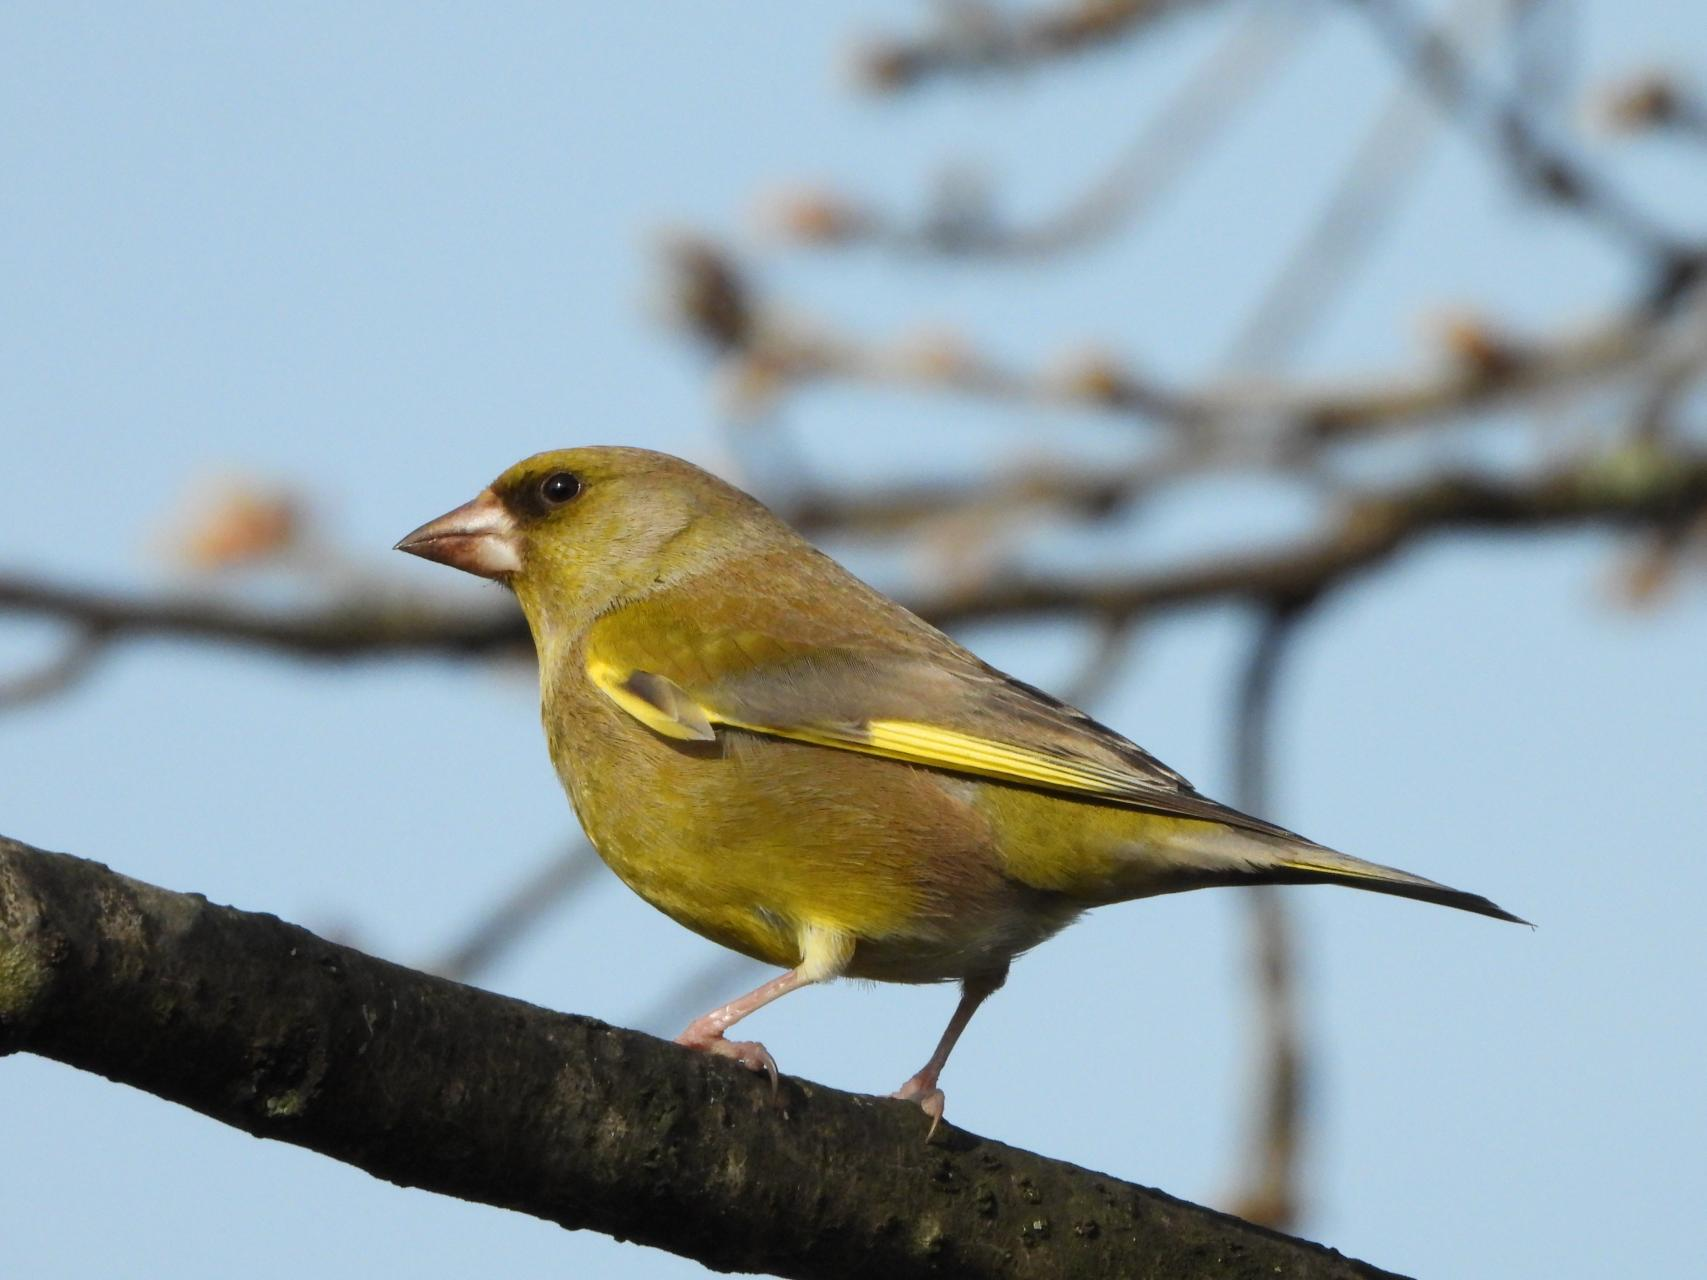 Adult Greenfinch.